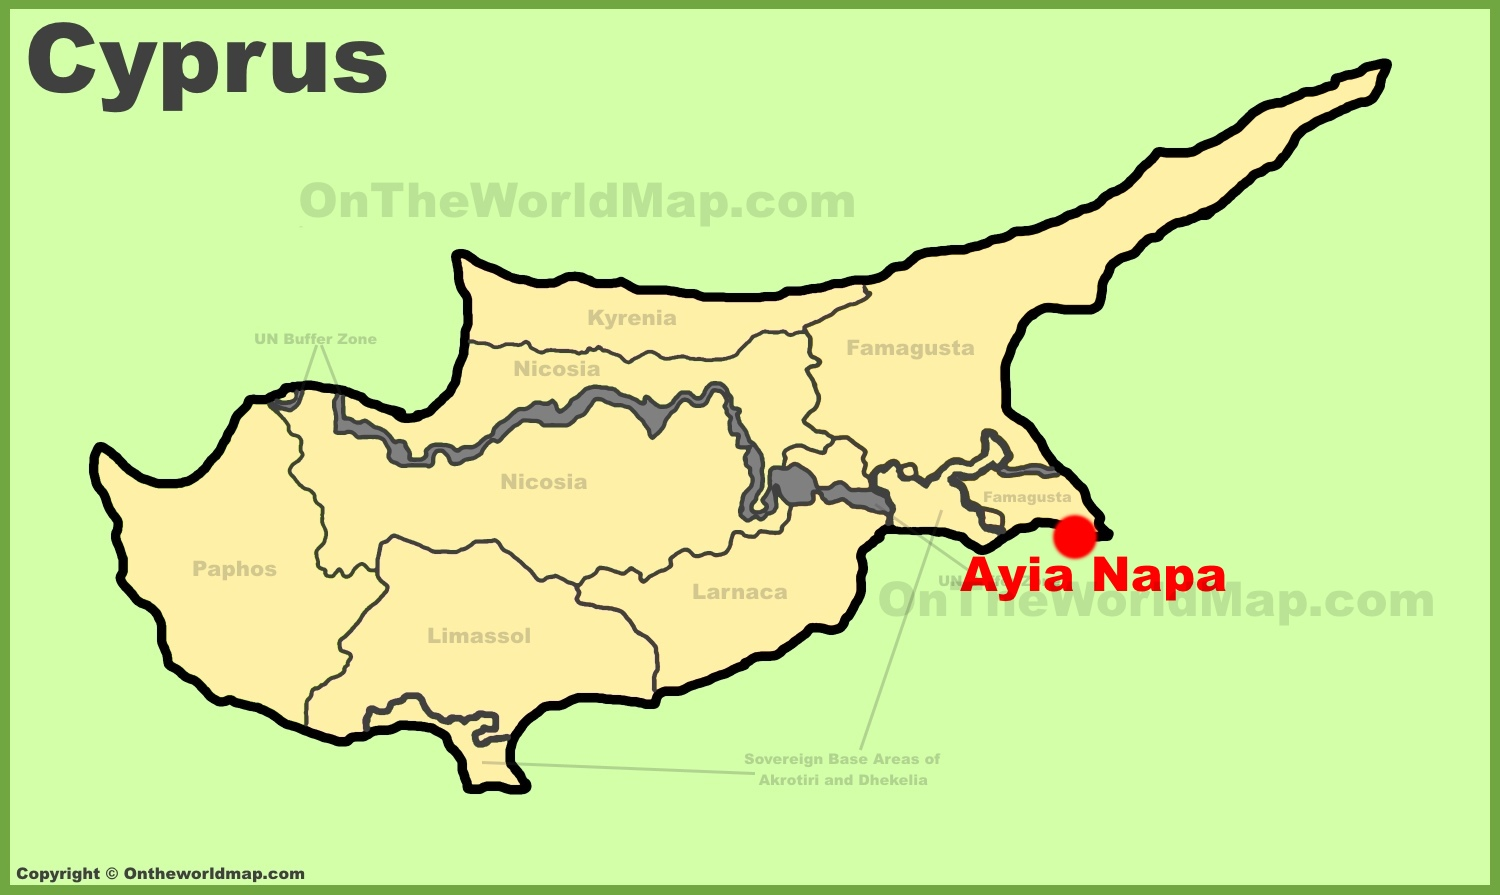 Ayia Napa location on the Cyprus map